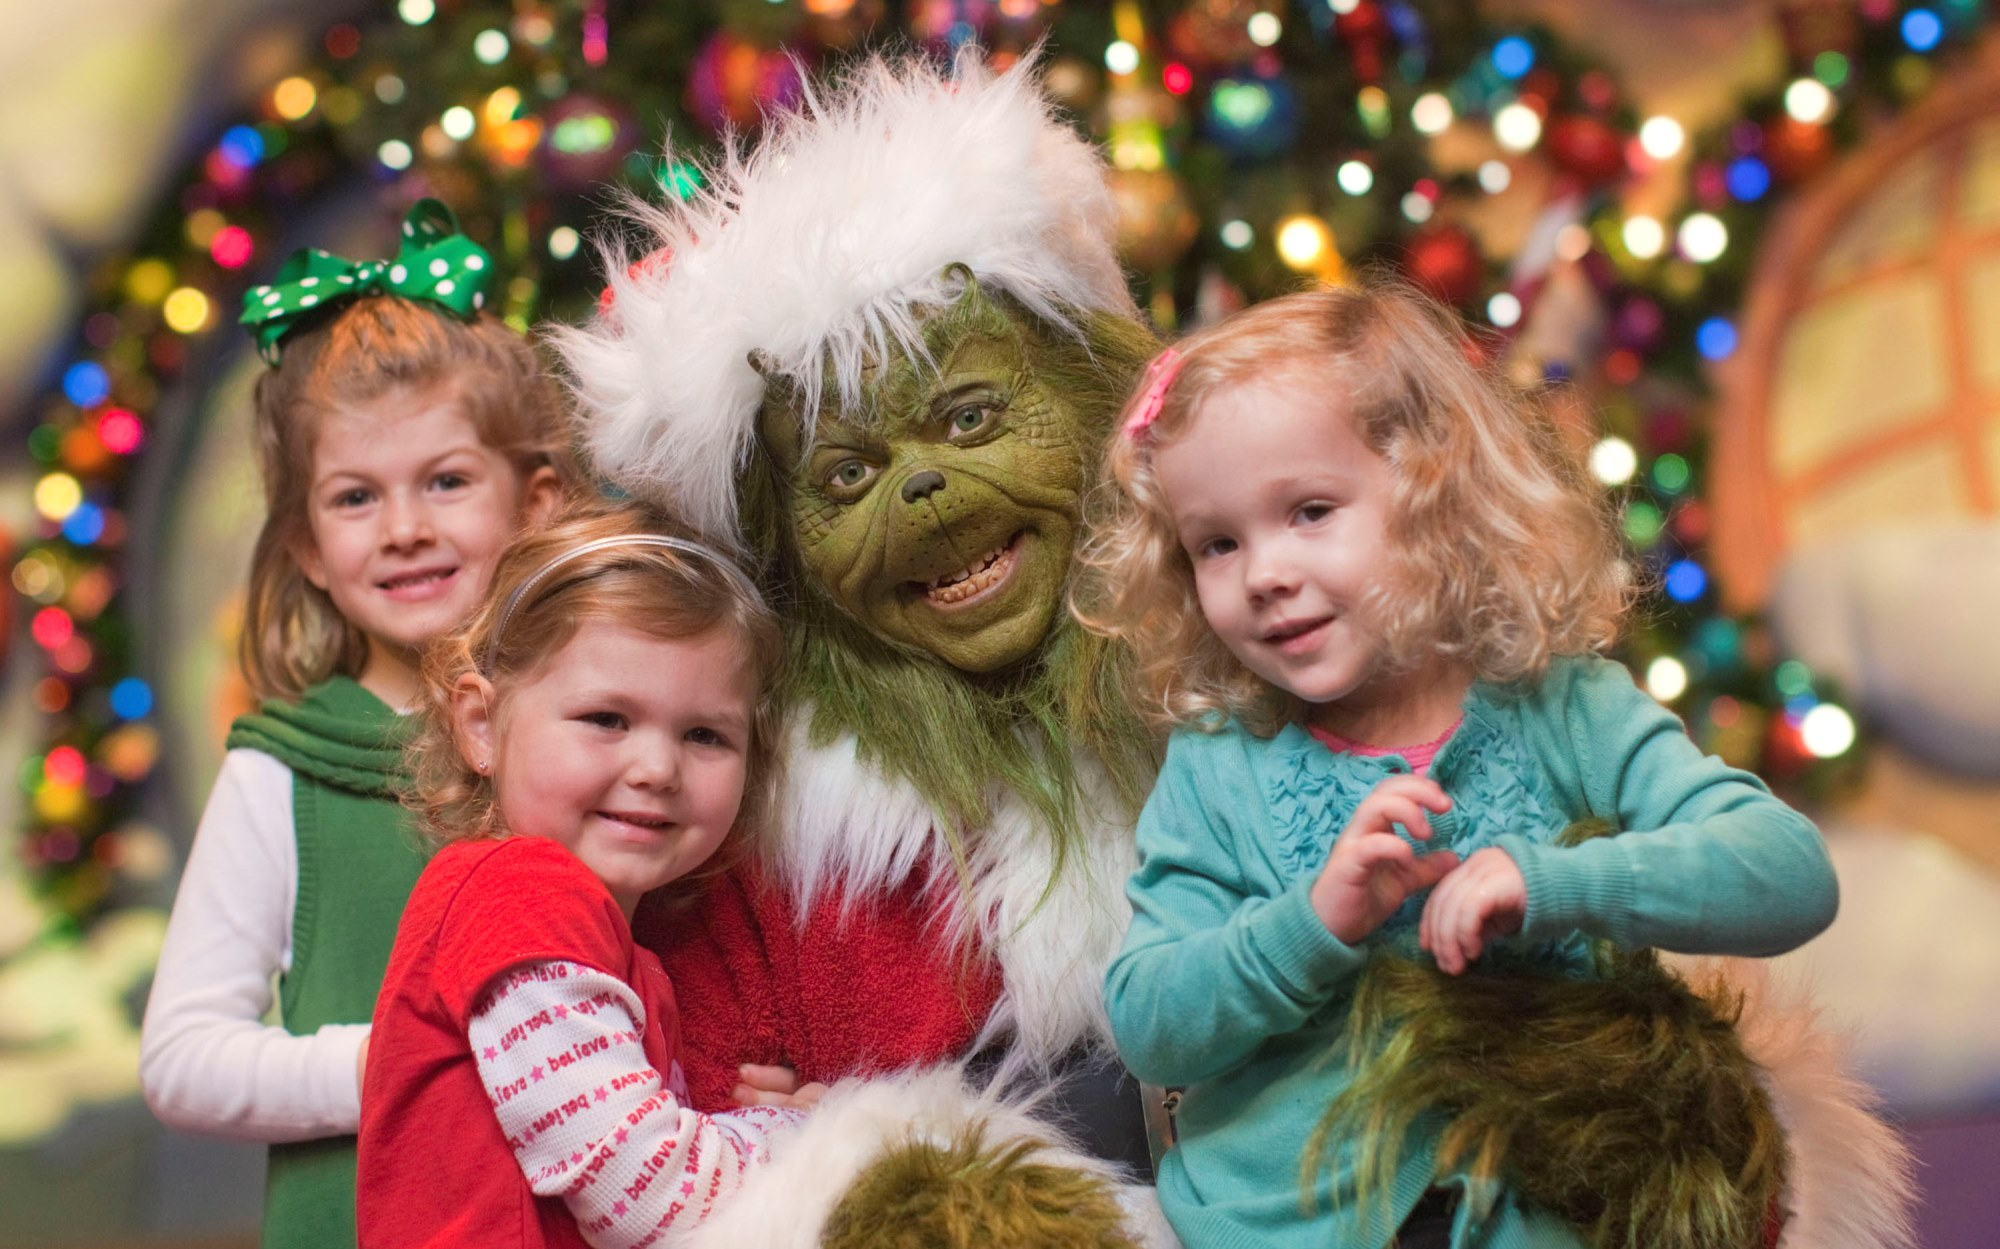 The Grinch at Universal's Islands of Adventure.